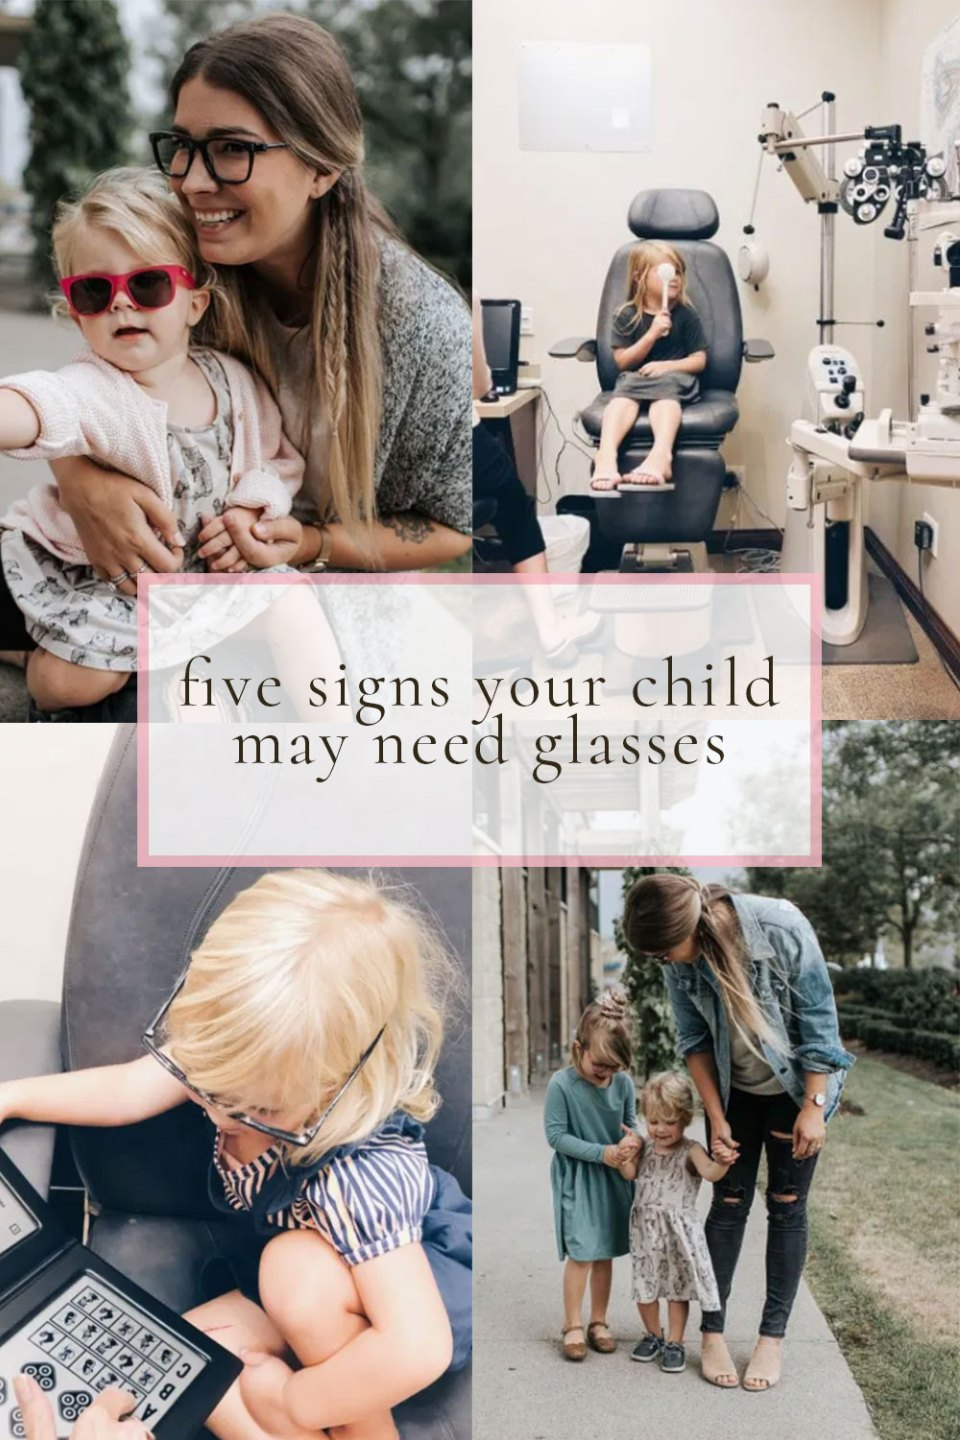 5 Signs your child may need glasse